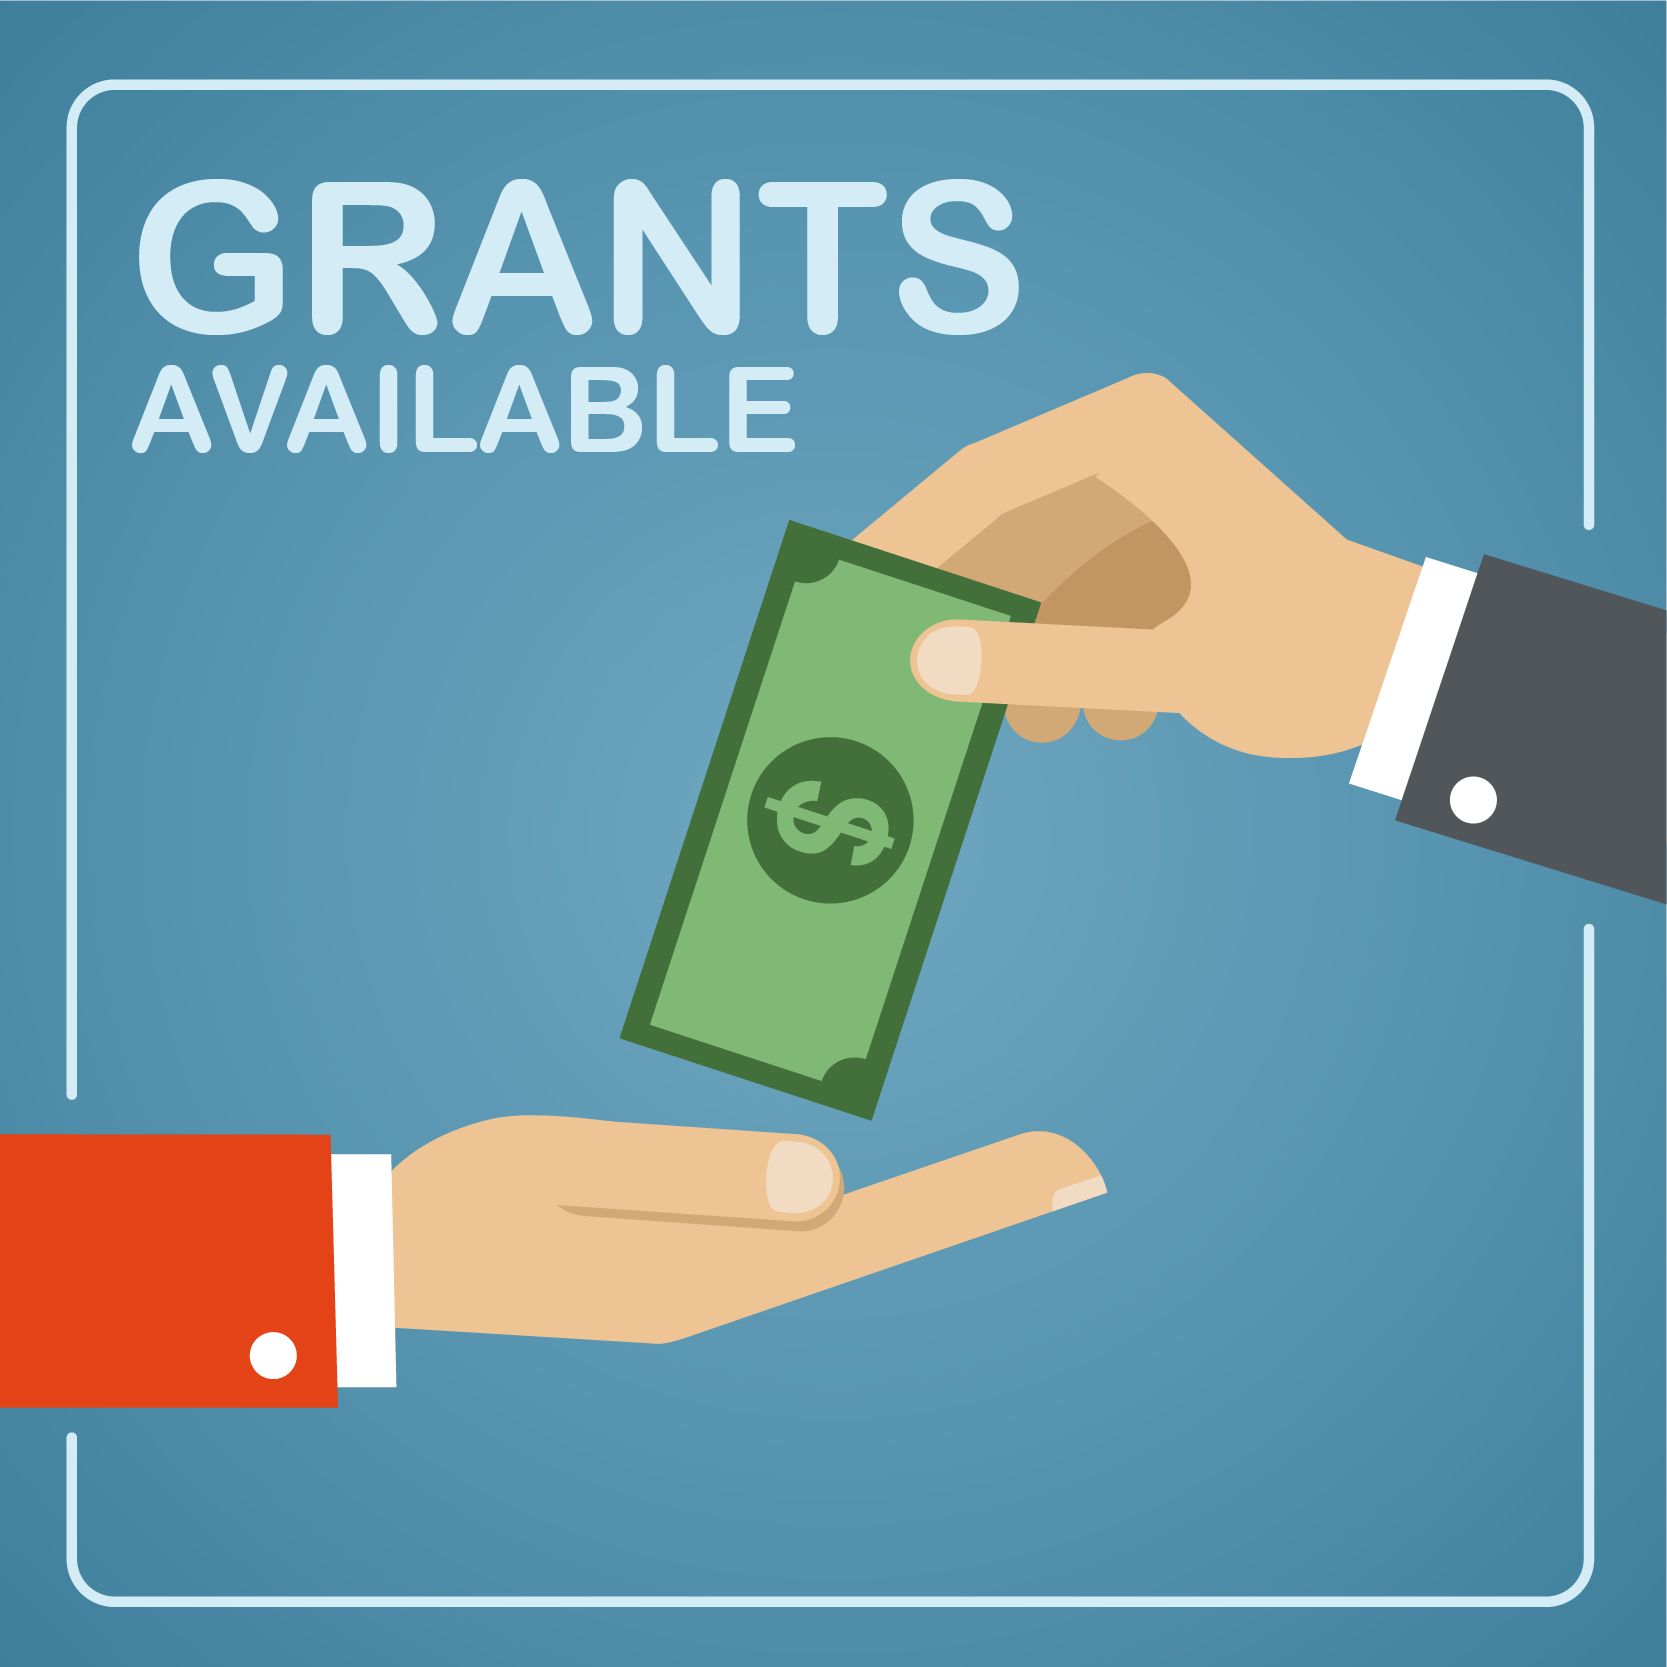 GRANTS_AVAIL.png